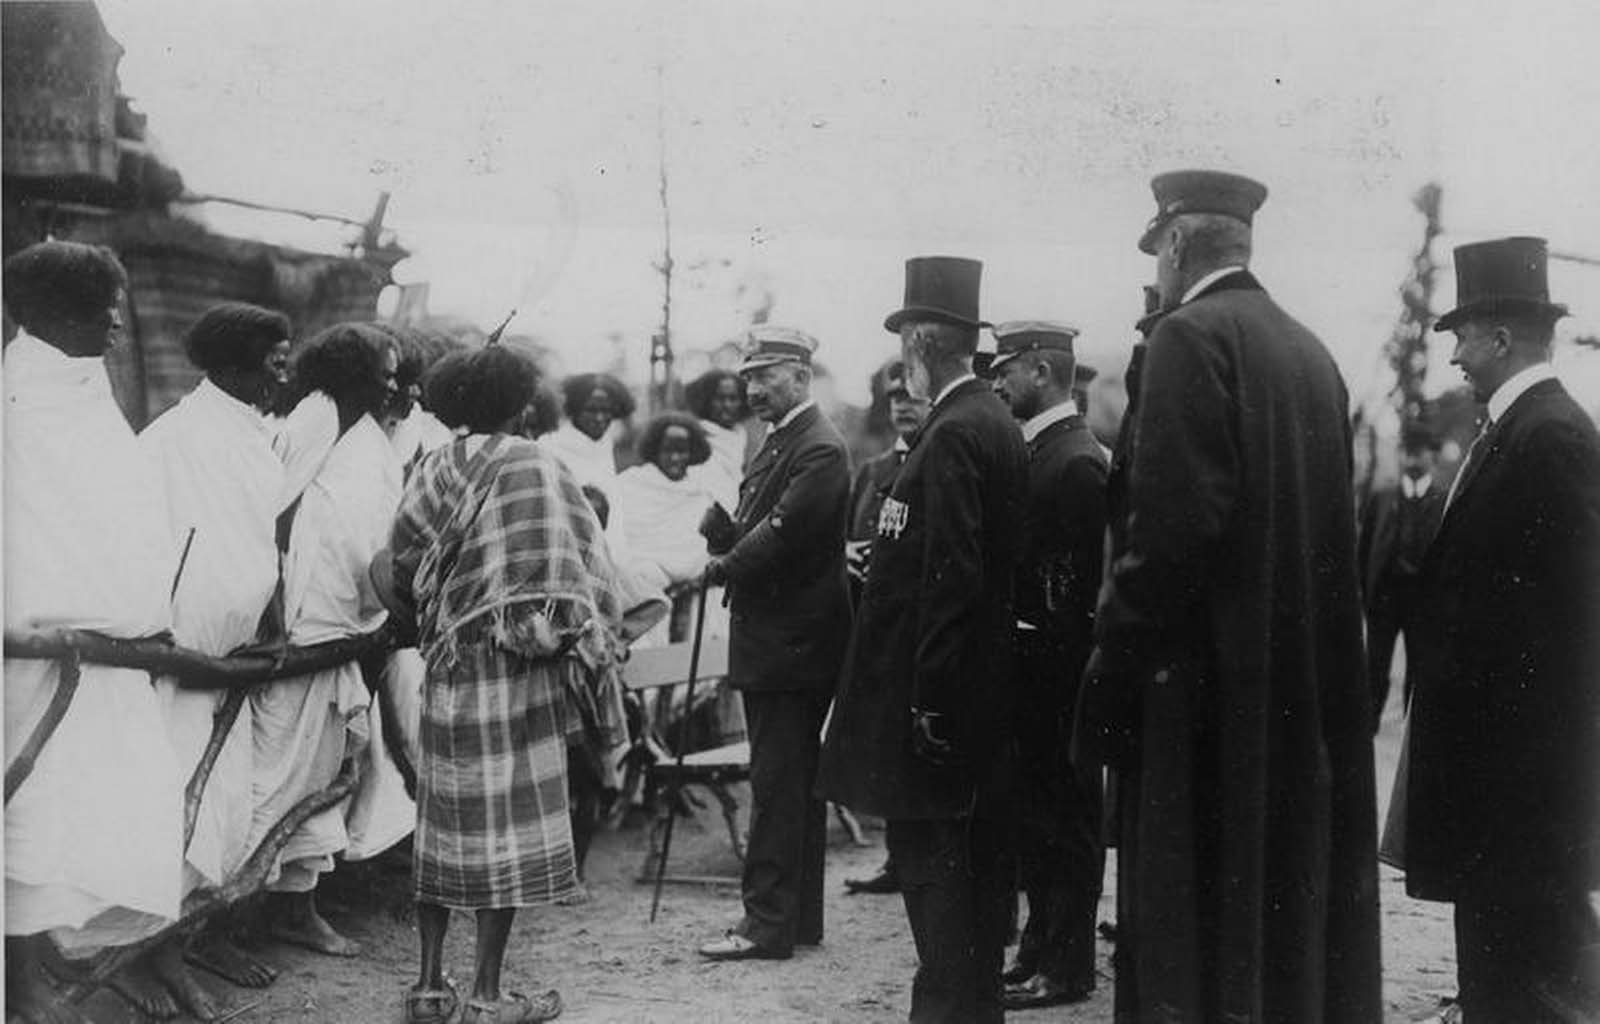 Germany's Kaiser Wilhelm II is pictured meeting Ethiopians standing behind a wooden fence in Hamburg, Germany in 1909.